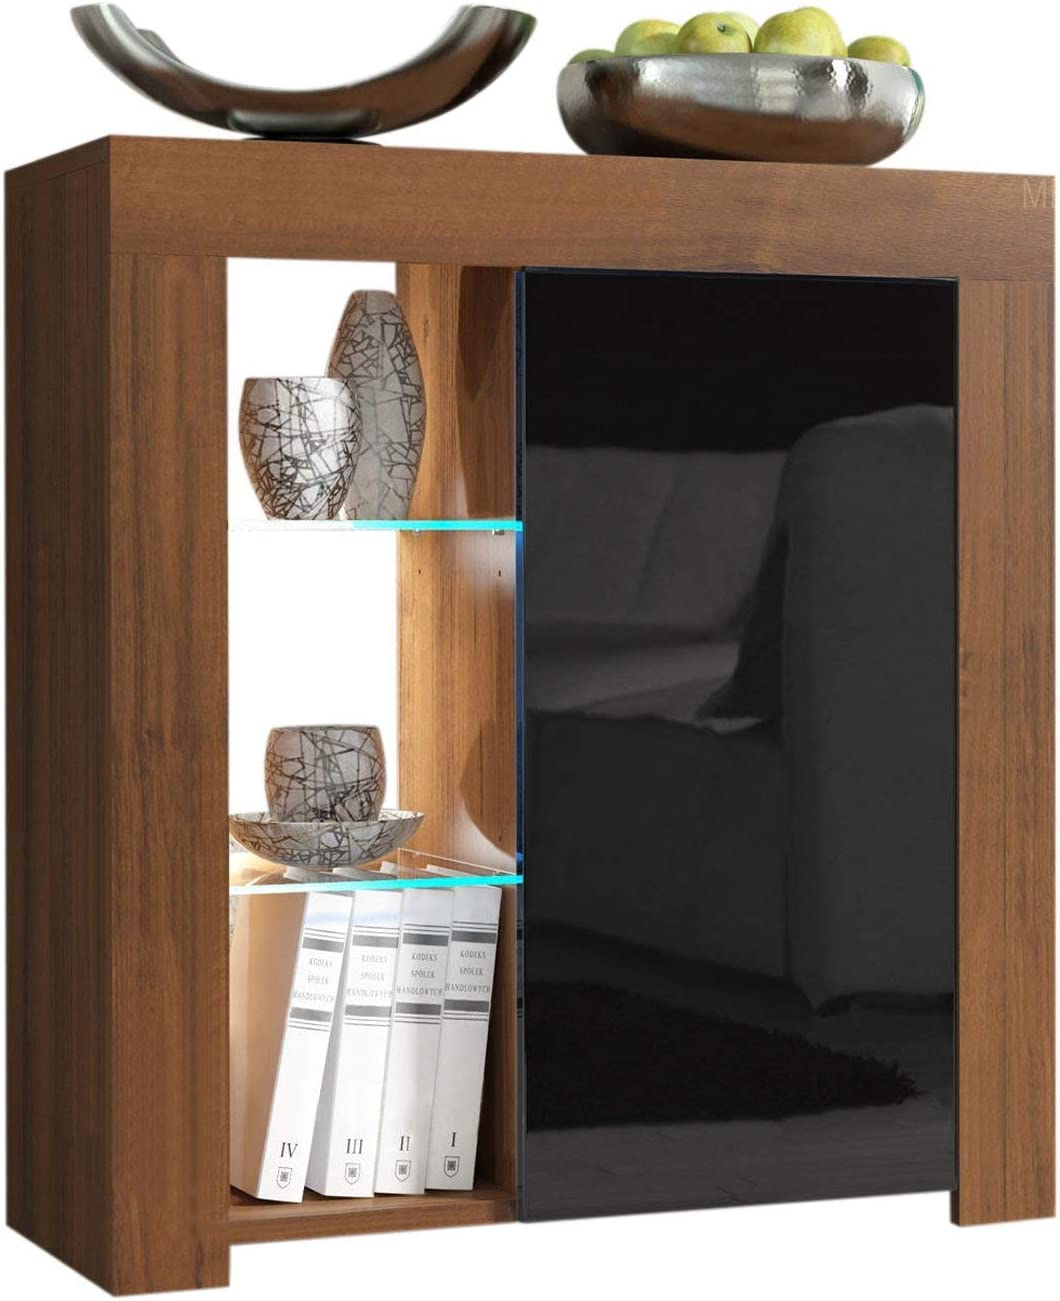 Domadeco Milano 1 Sideboard Contemporary Style Sideboard Cabinet and Buffet/Wooden sideboards Color Walnut and Black